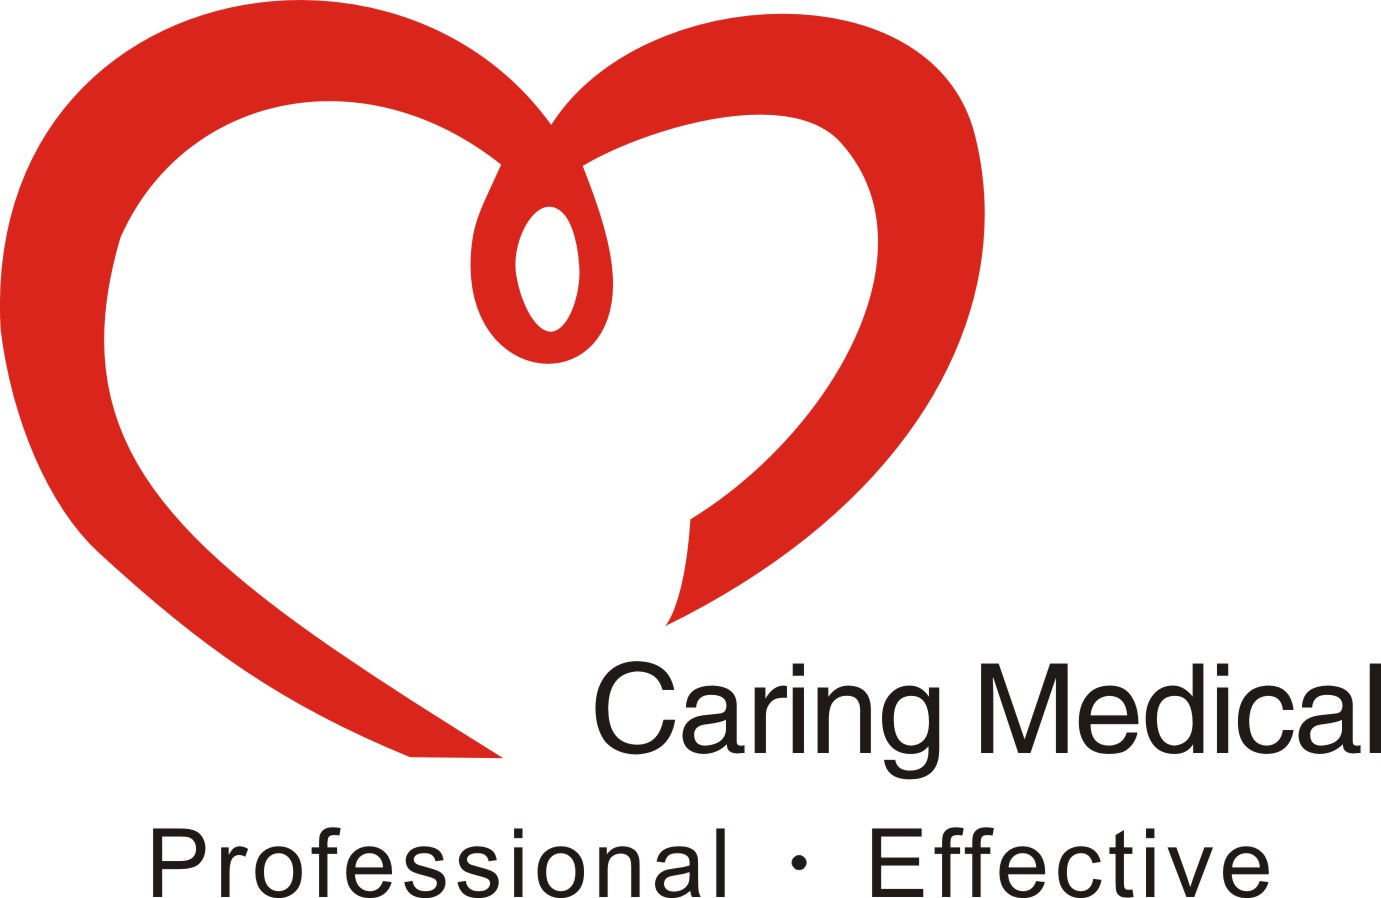 Caring Medical (Shanghai) logo